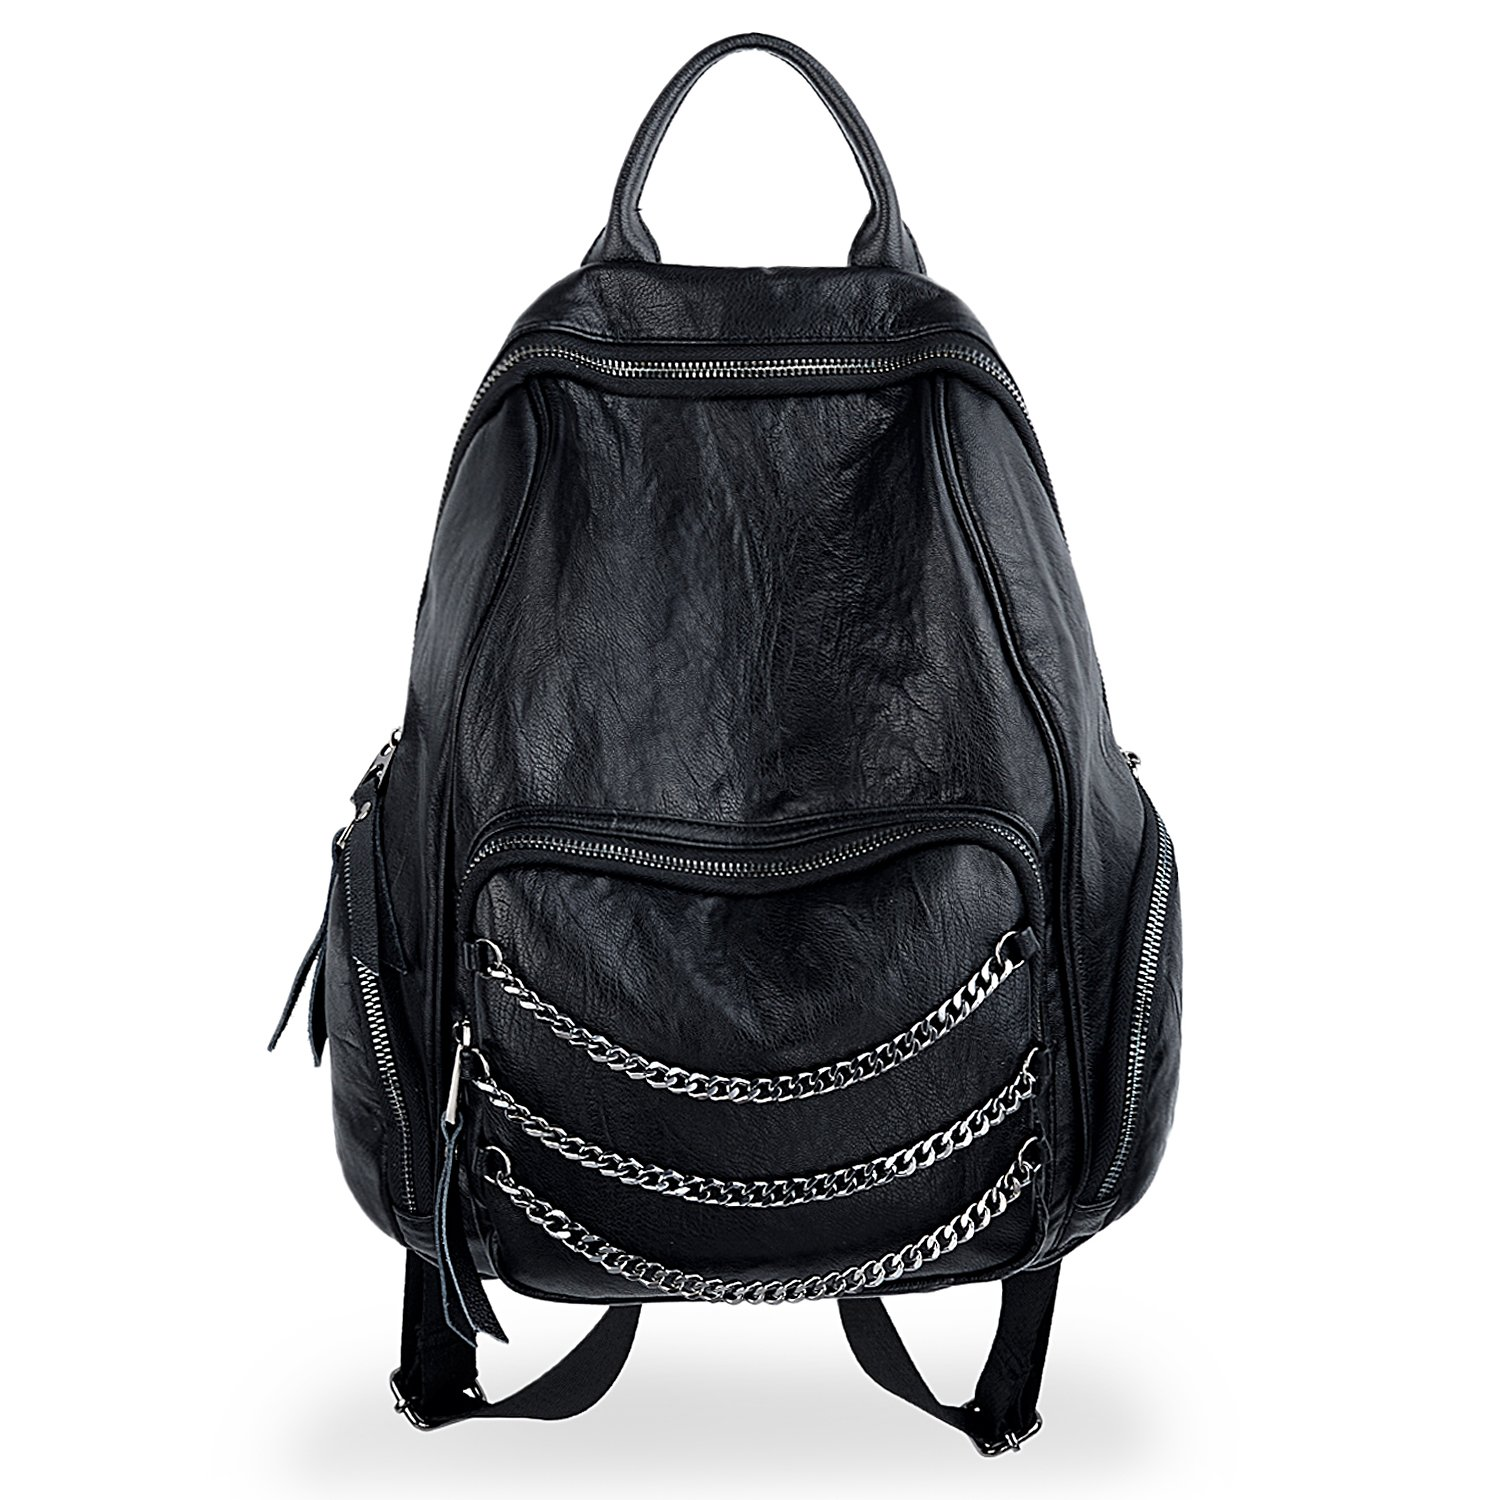 UTO Women Backpack Purse PU Washed Leather Triple Chains Ladies Rucksack Shoulder Bag Black